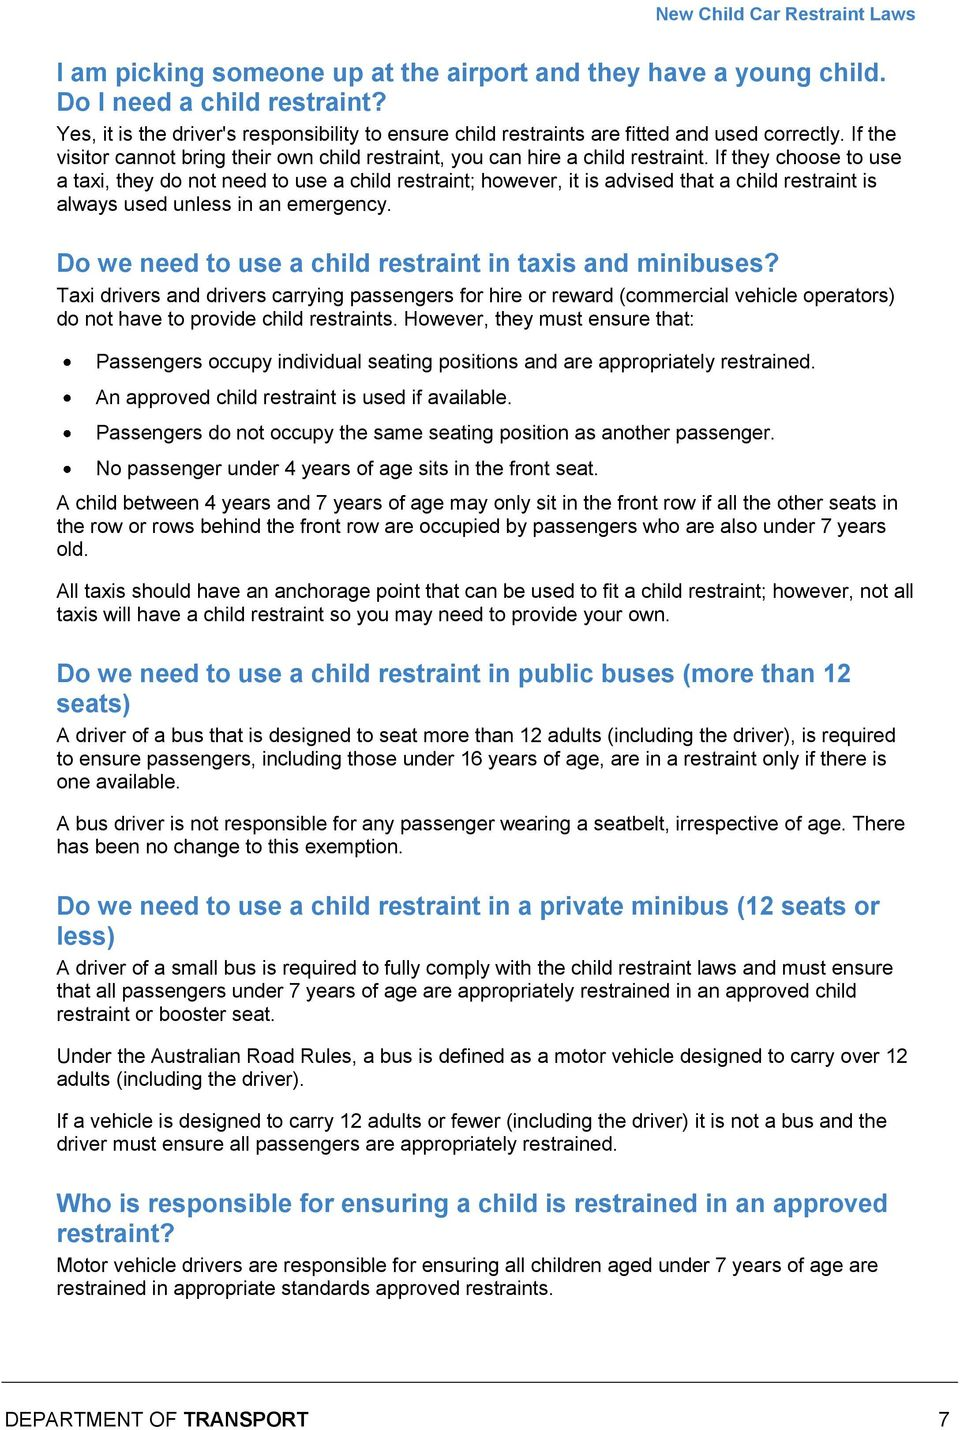 If they choose to use a taxi, they do not need to use a child restraint; however, it is advised that a child restraint is always used unless in an emergency.